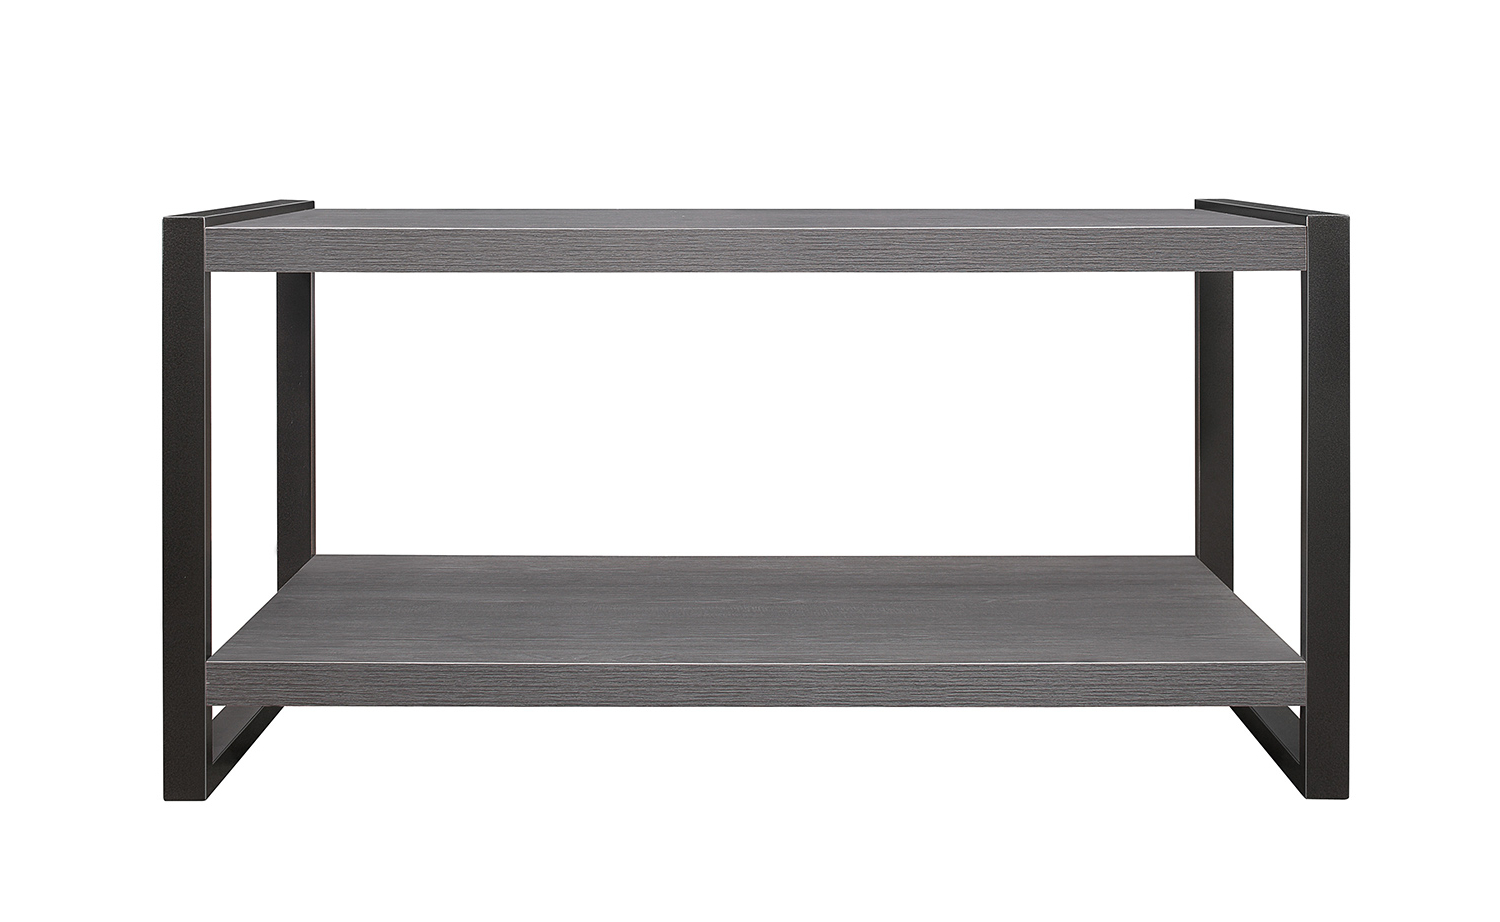 Homelegance Dogue Cocktail/coffee Table – Gunmetal Gray 3606 30 Throughout Well Known Gunmetal Coffee Tables (View 16 of 20)